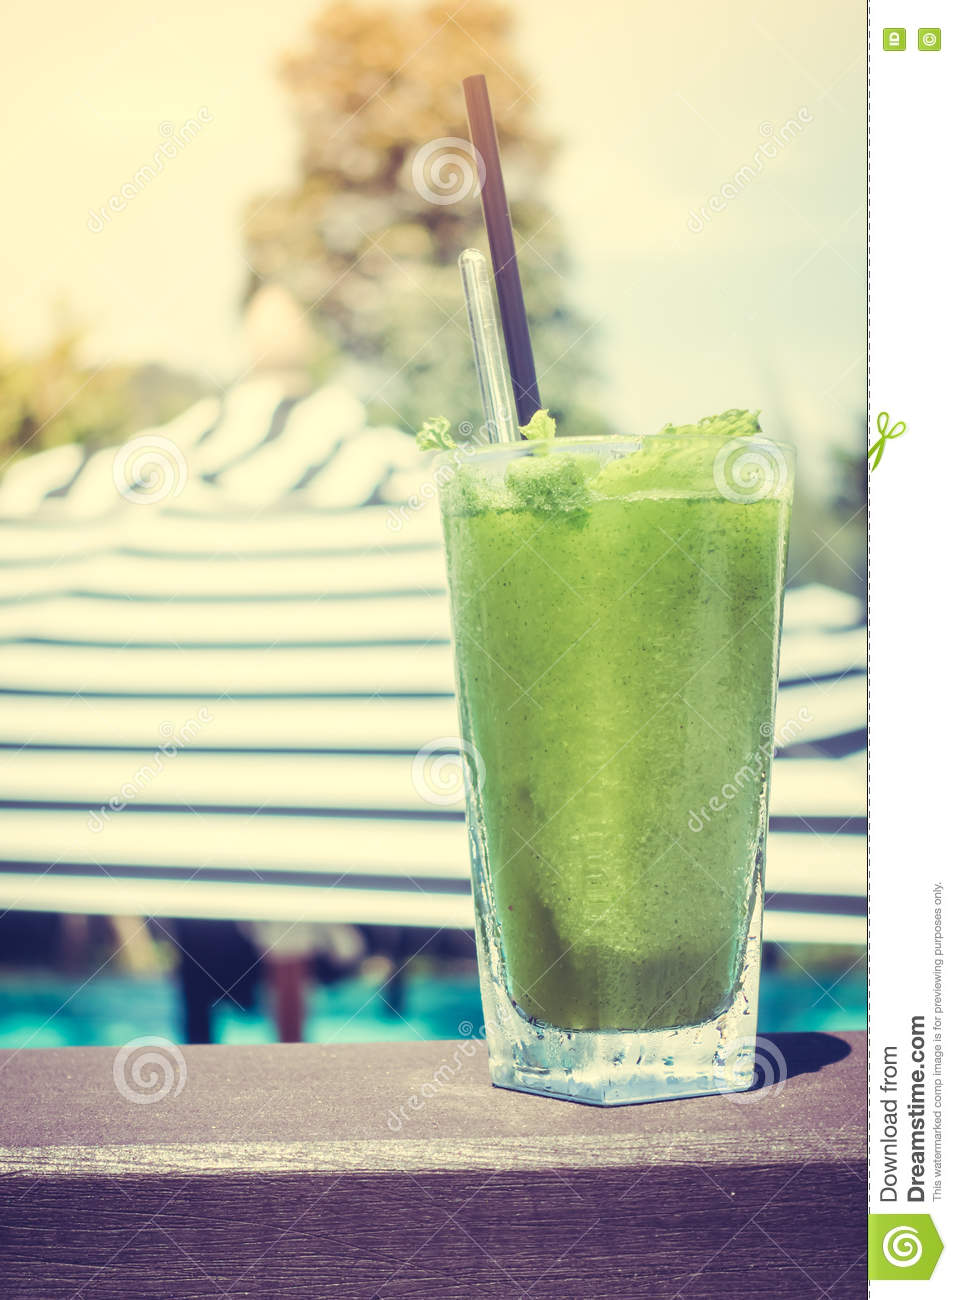 Mint juice stock photo image 73122863 for Swimming pools drank instrumental